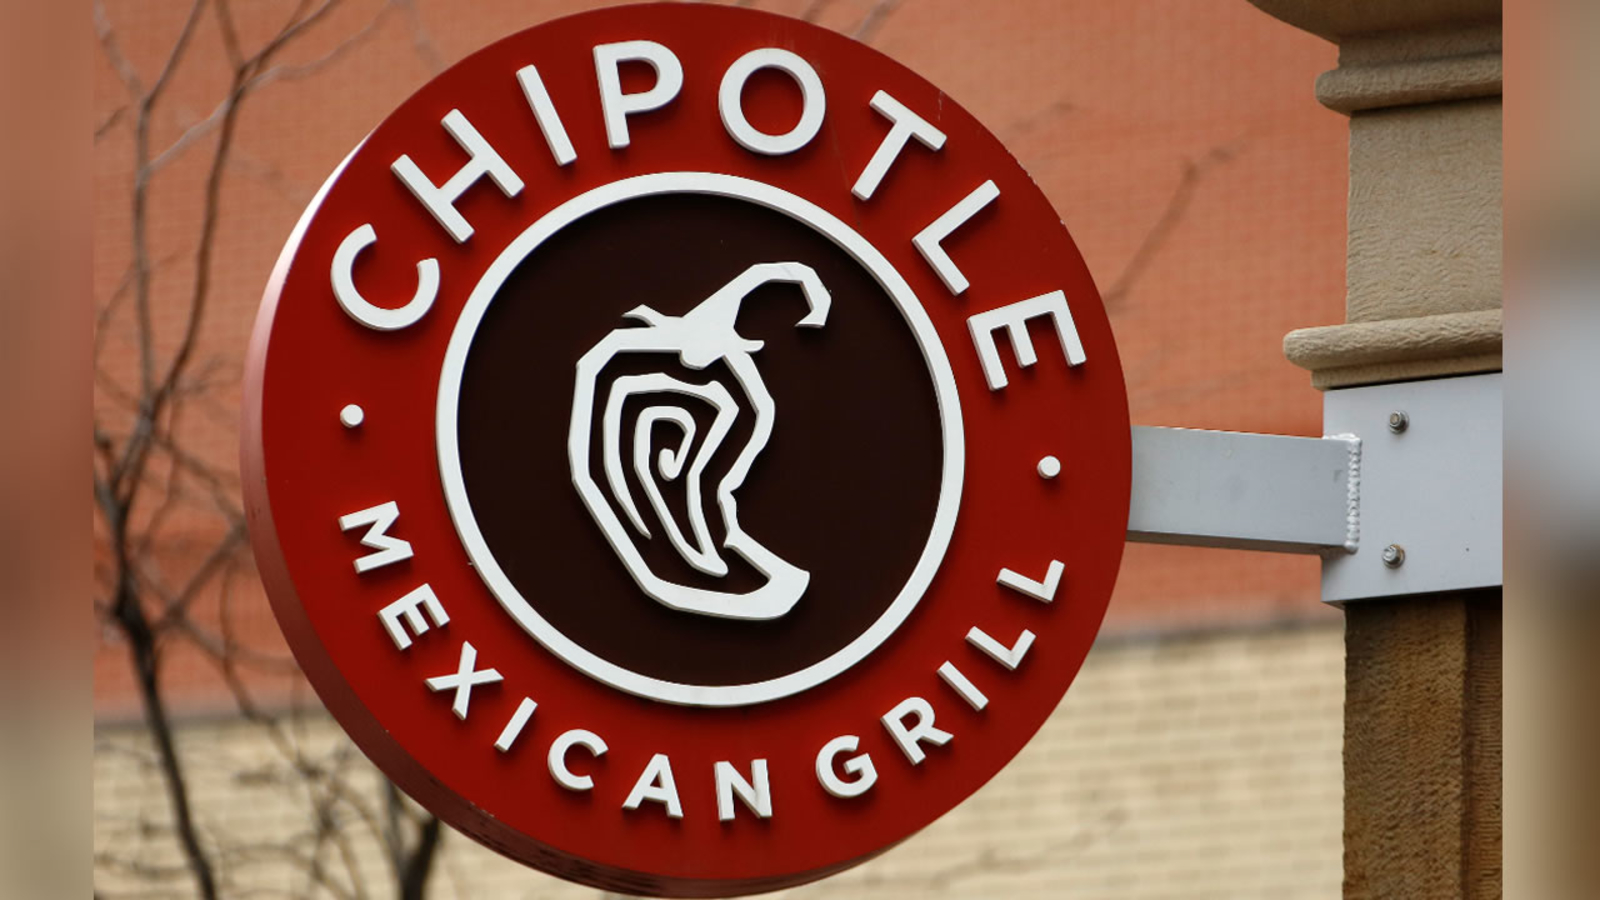 Chipotle Raises Menu Prices by 4% to Cover Cost of Raising Workers' Wages